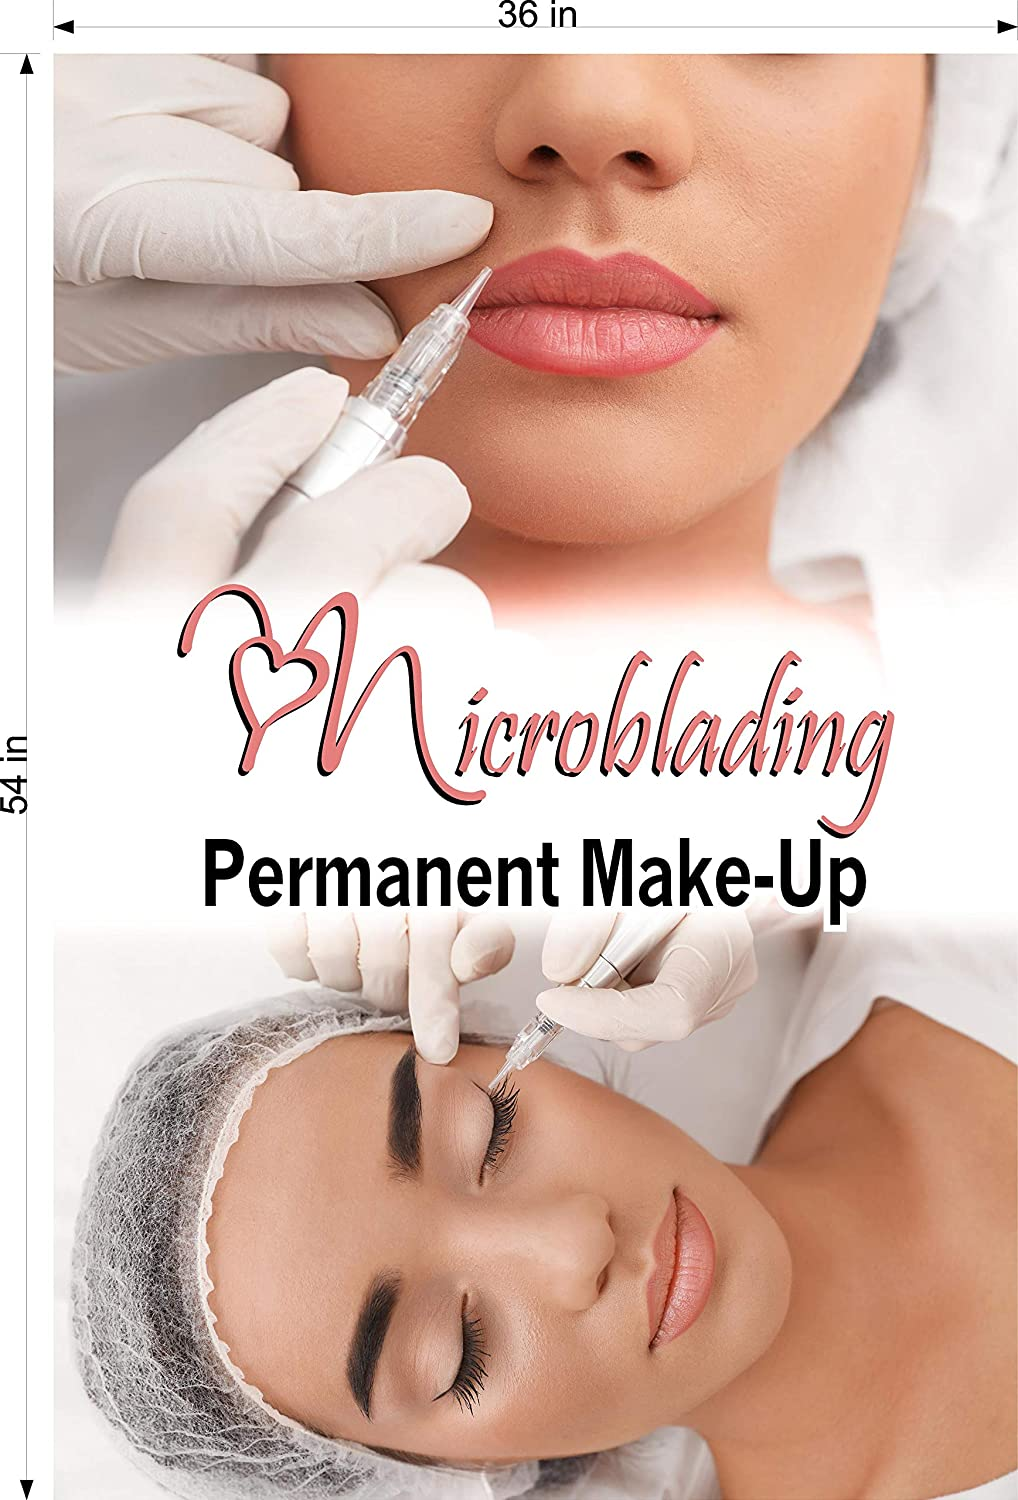 , 54 NAILSIGNS.com Microblading XV Salon Service Sign Marketing Poster Permanent Makeup Salon Ad Vertical Indoors Photo-Realistic Paper Poster Matte Non-Laminated